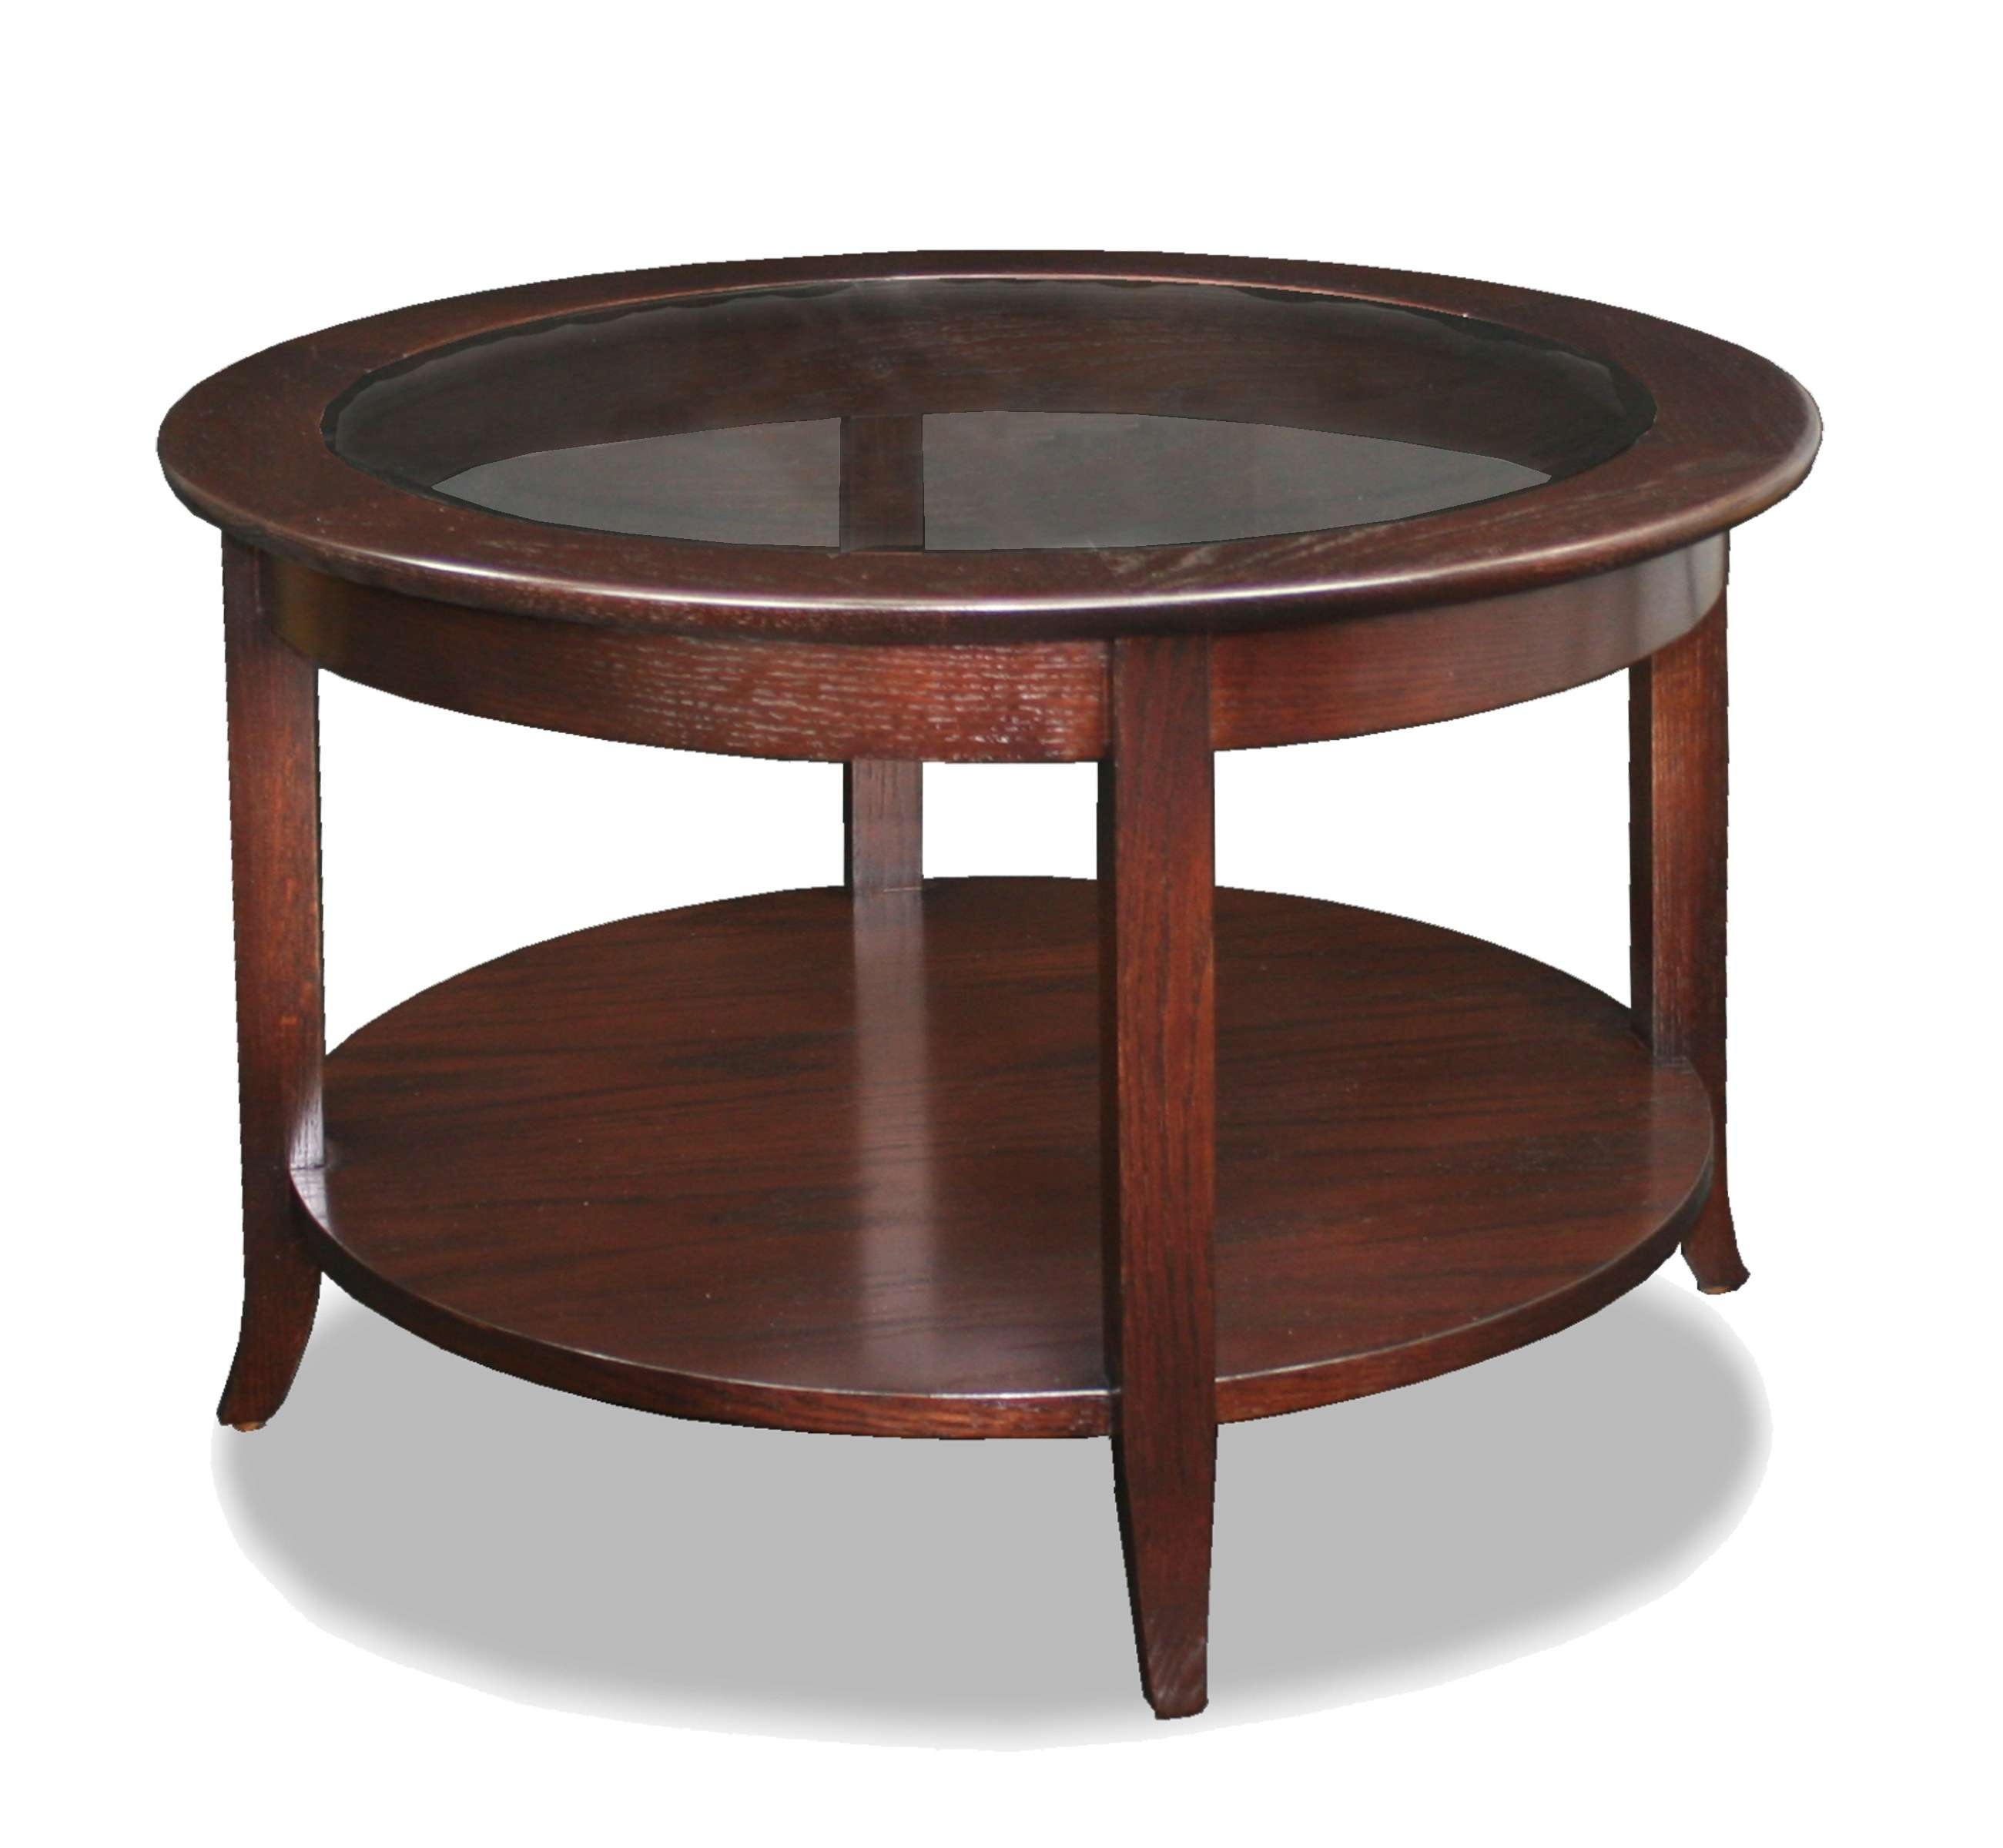 Most Up To Date Round Wood And Glass Coffee Tables Throughout Coffee Tables : Round Coffee Table Wood And Glass With Storage (View 13 of 20)